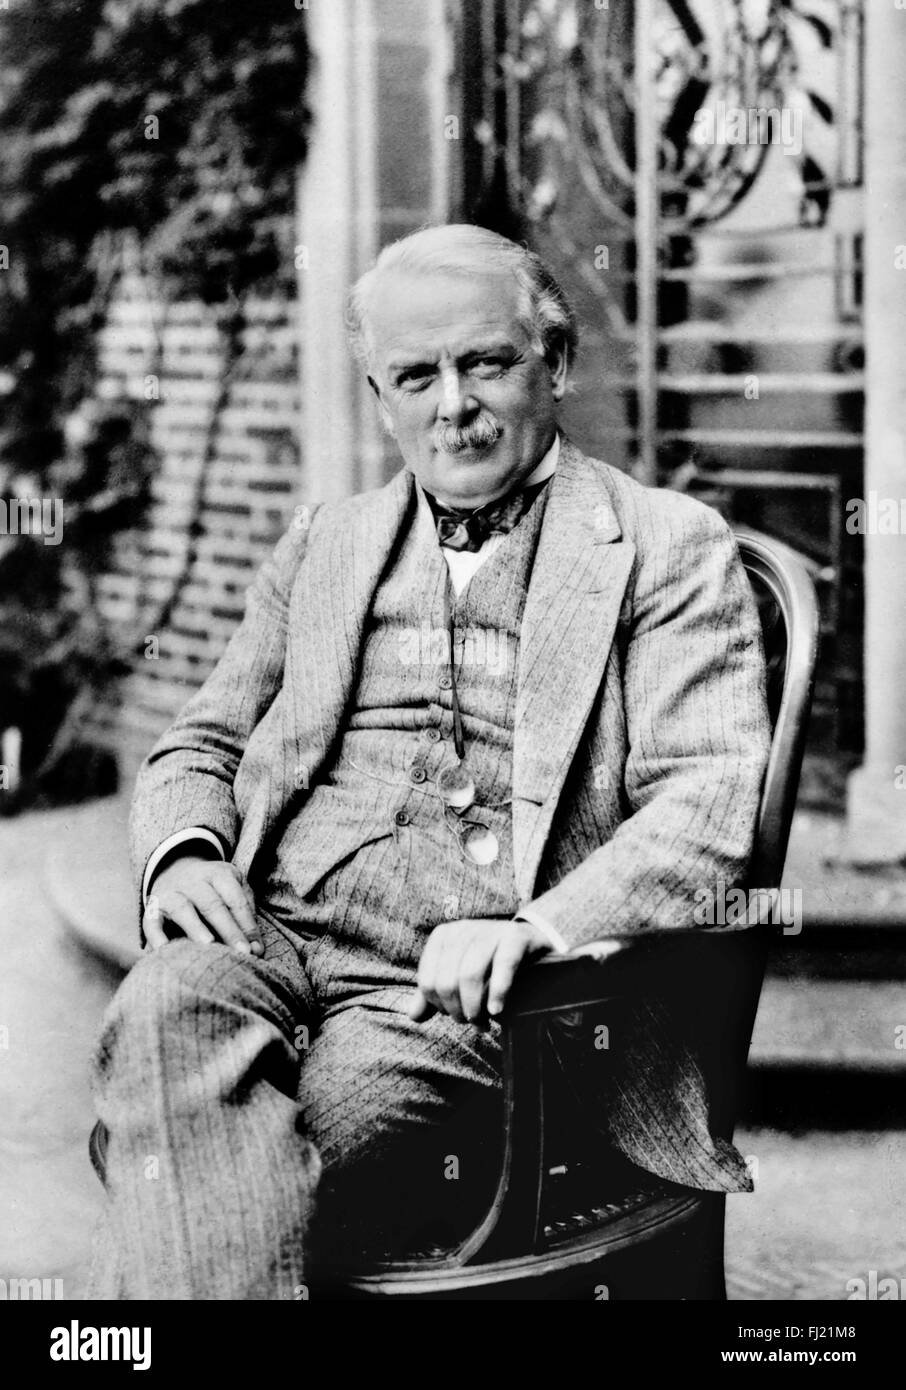 David Lloyd George. Potrait of the liberal politician who was British Prime Minister during and immediately after - Stock Image